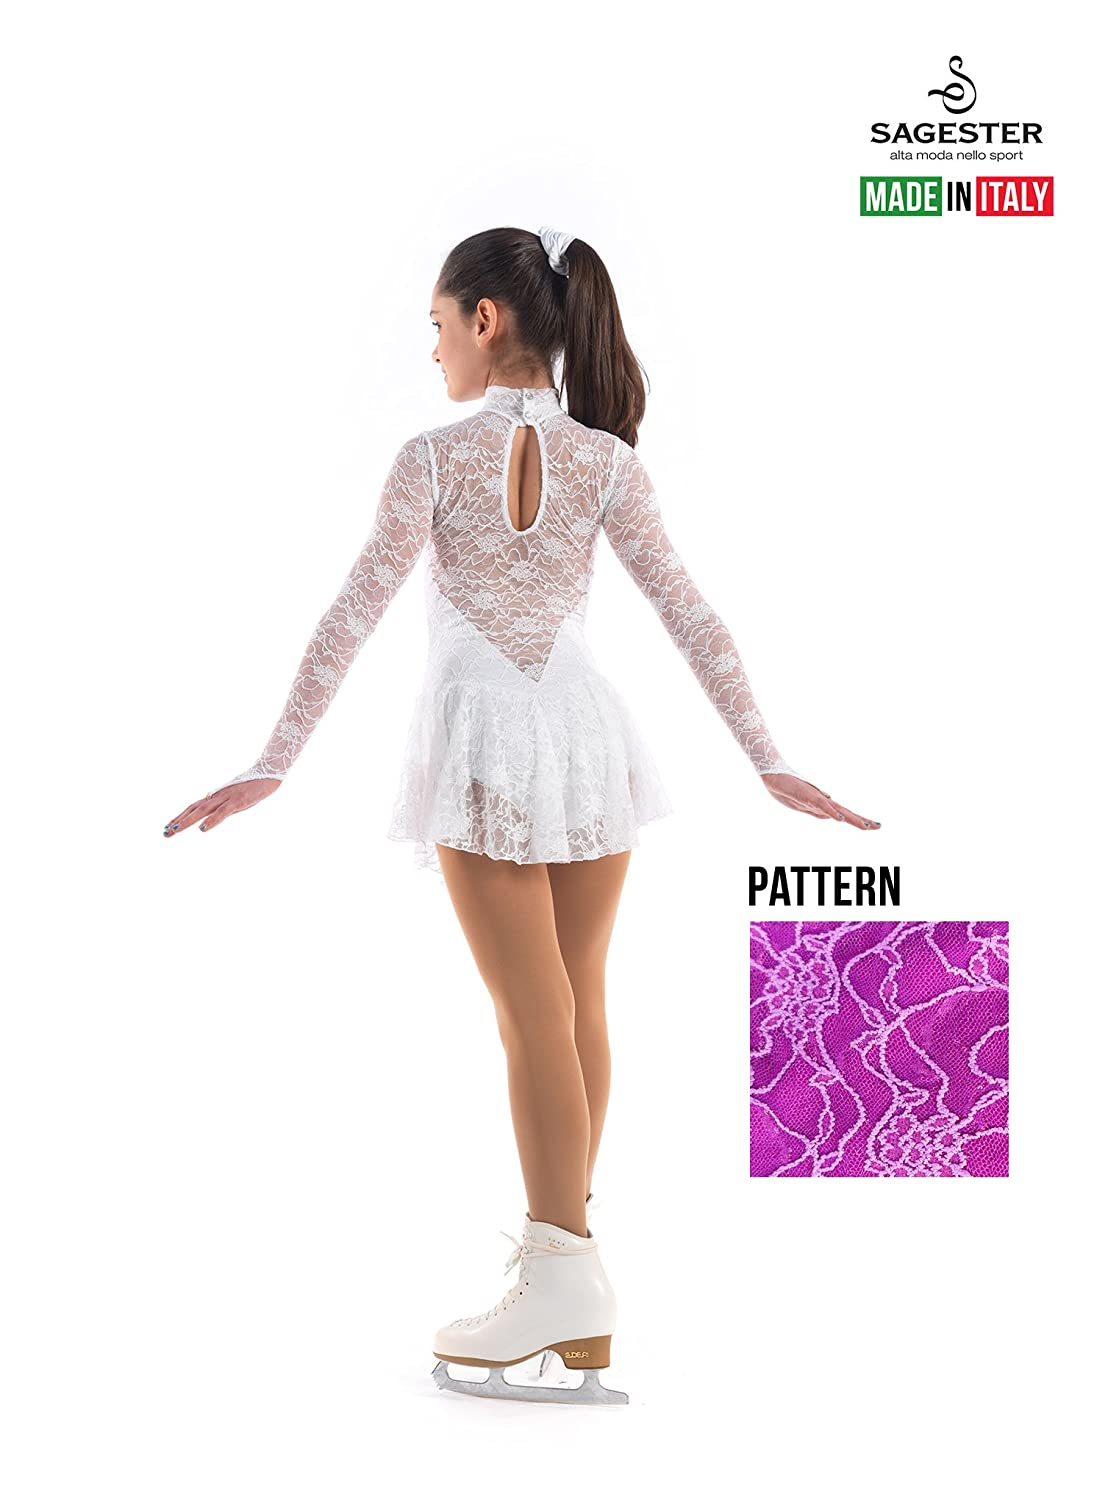 Dancing Sagester # 120 Skin Italy Hand-Made//Leotard for Figure Ice Skating